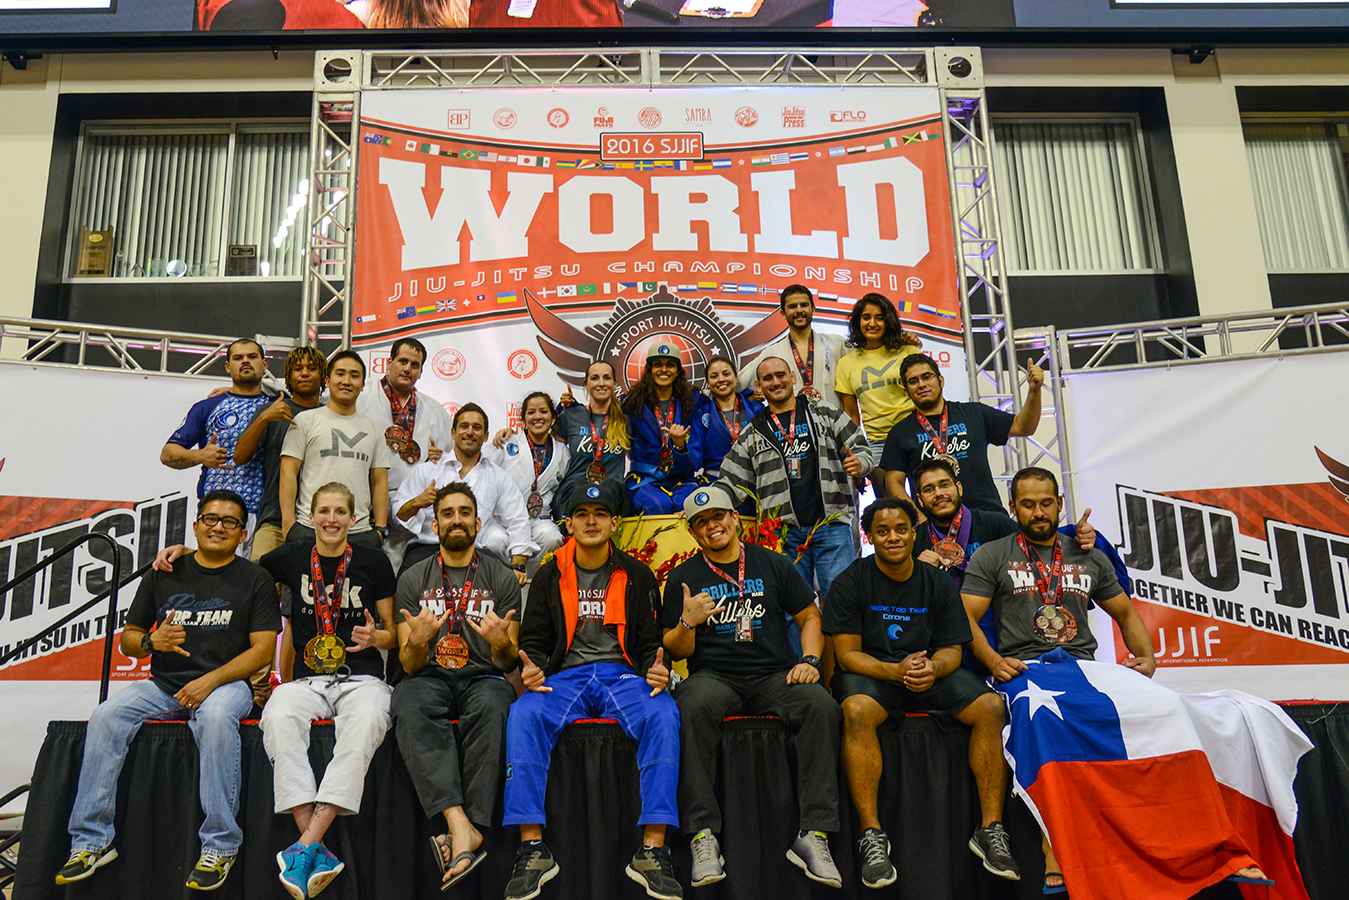 Brazilian jiu jitsu worlds training camp